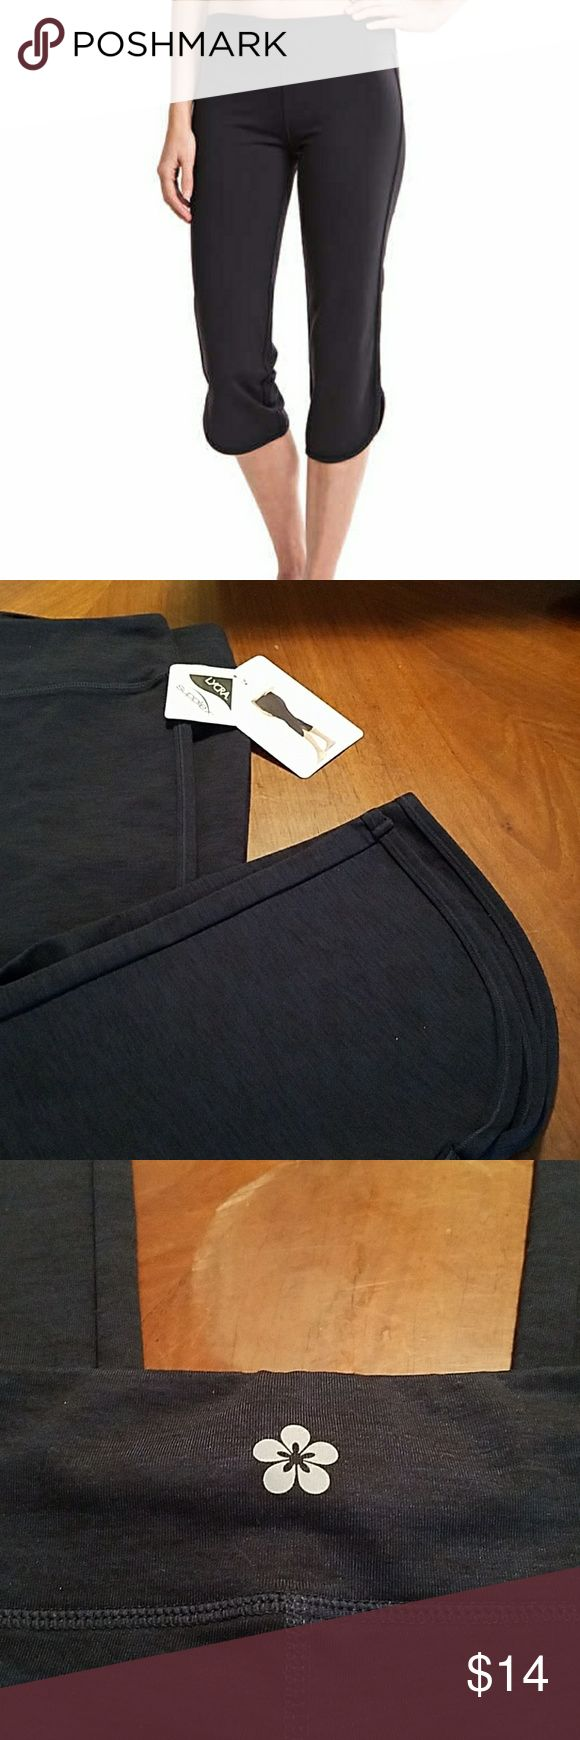 Tuff Athletics Lycra legging/workout capris, Med. Tuff Athletics Lycra legging/workout capris, Navy Blue, size Medium  Same / Next Day Shipping 📦 Smoke-free home 🏠  Bundle items, great savings 💲 Free sample / gift with every purchase 🎁 And thanks for stopping by  to browse and hopefully shop my closet 💄💍👢👗👙🛍 Tuff Athletics Pants Leggings